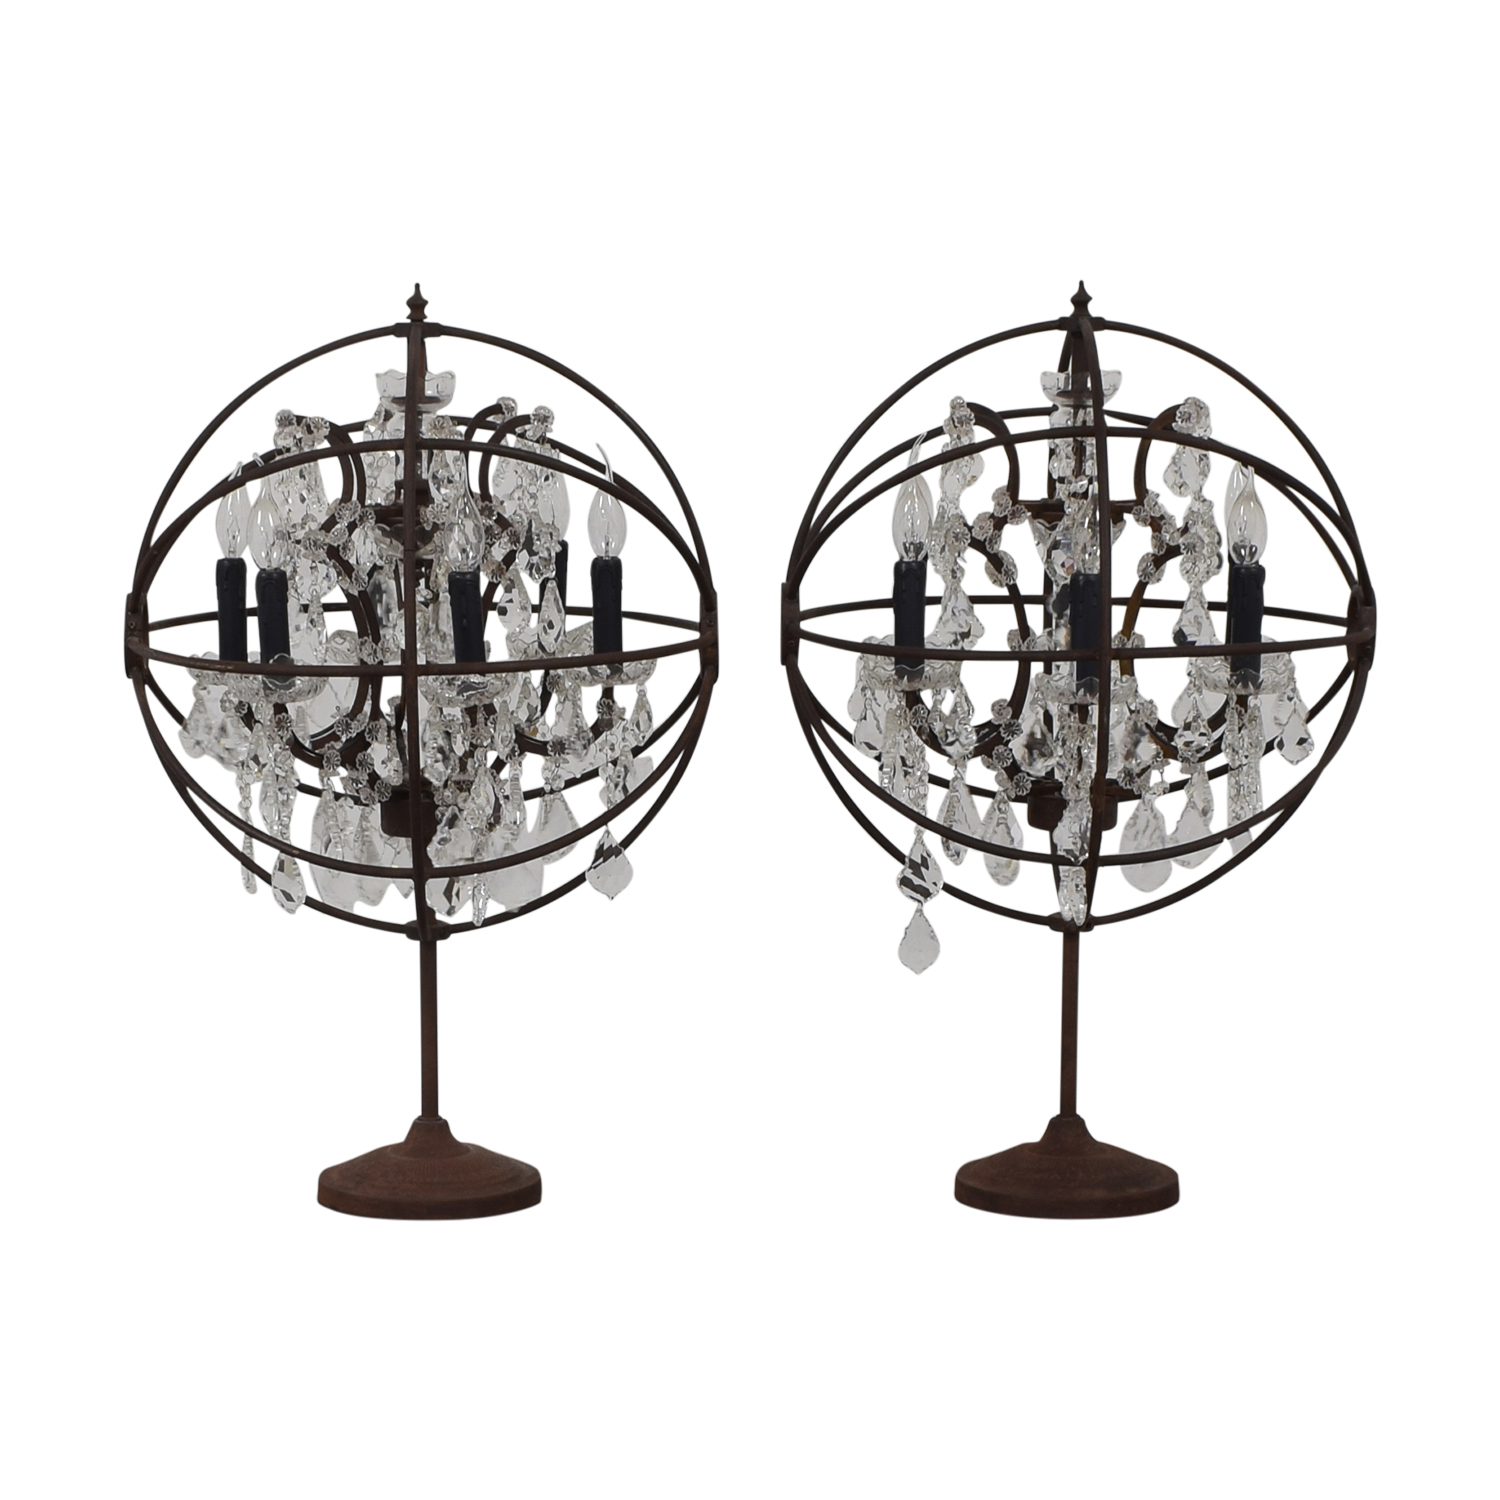 Restoration Hardware Orb Crystal Table Lamps sale